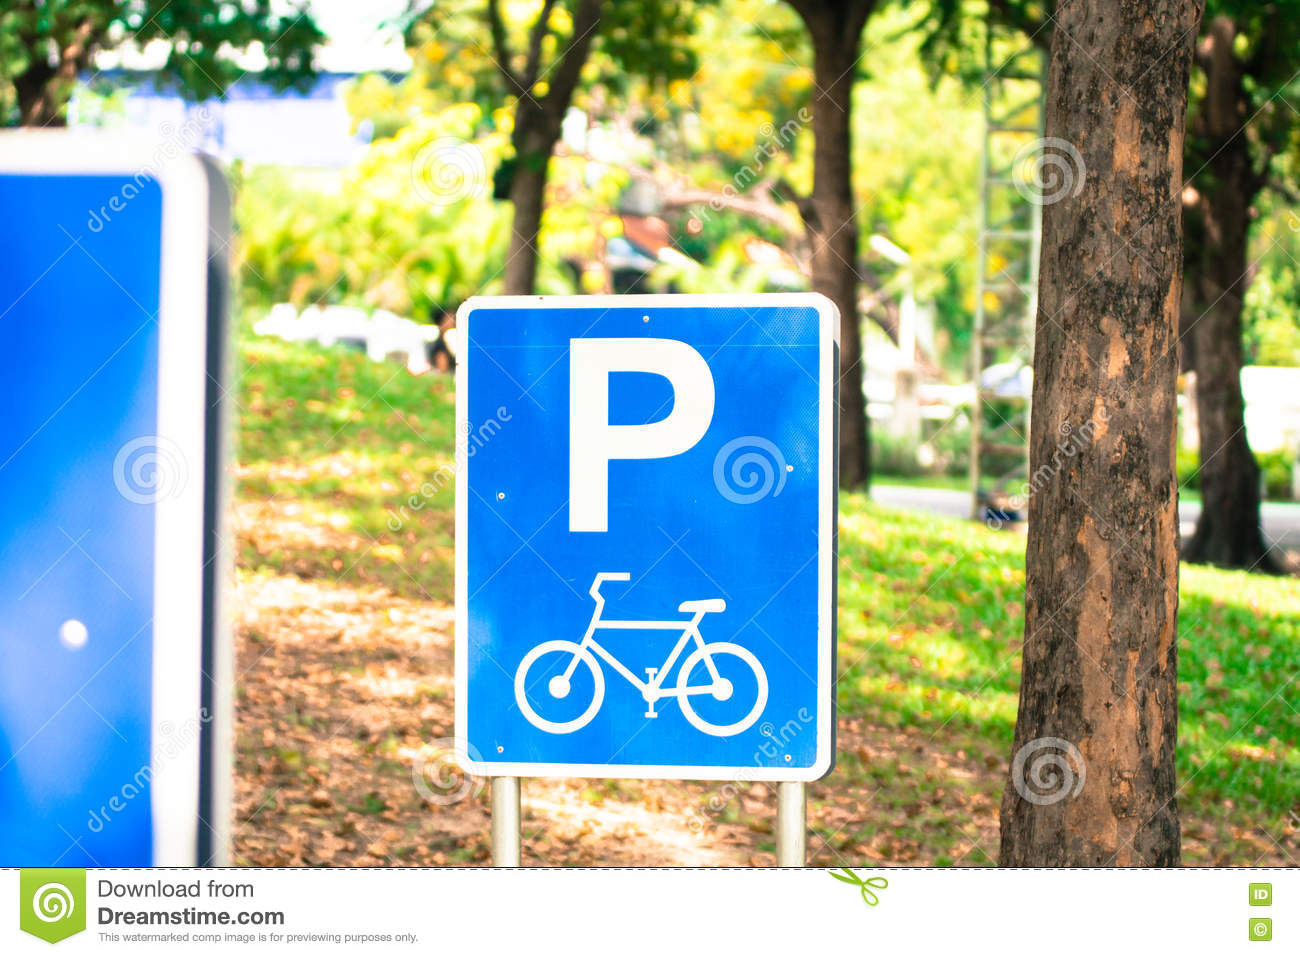 Bicycle Traffic Signs in park, Thailand